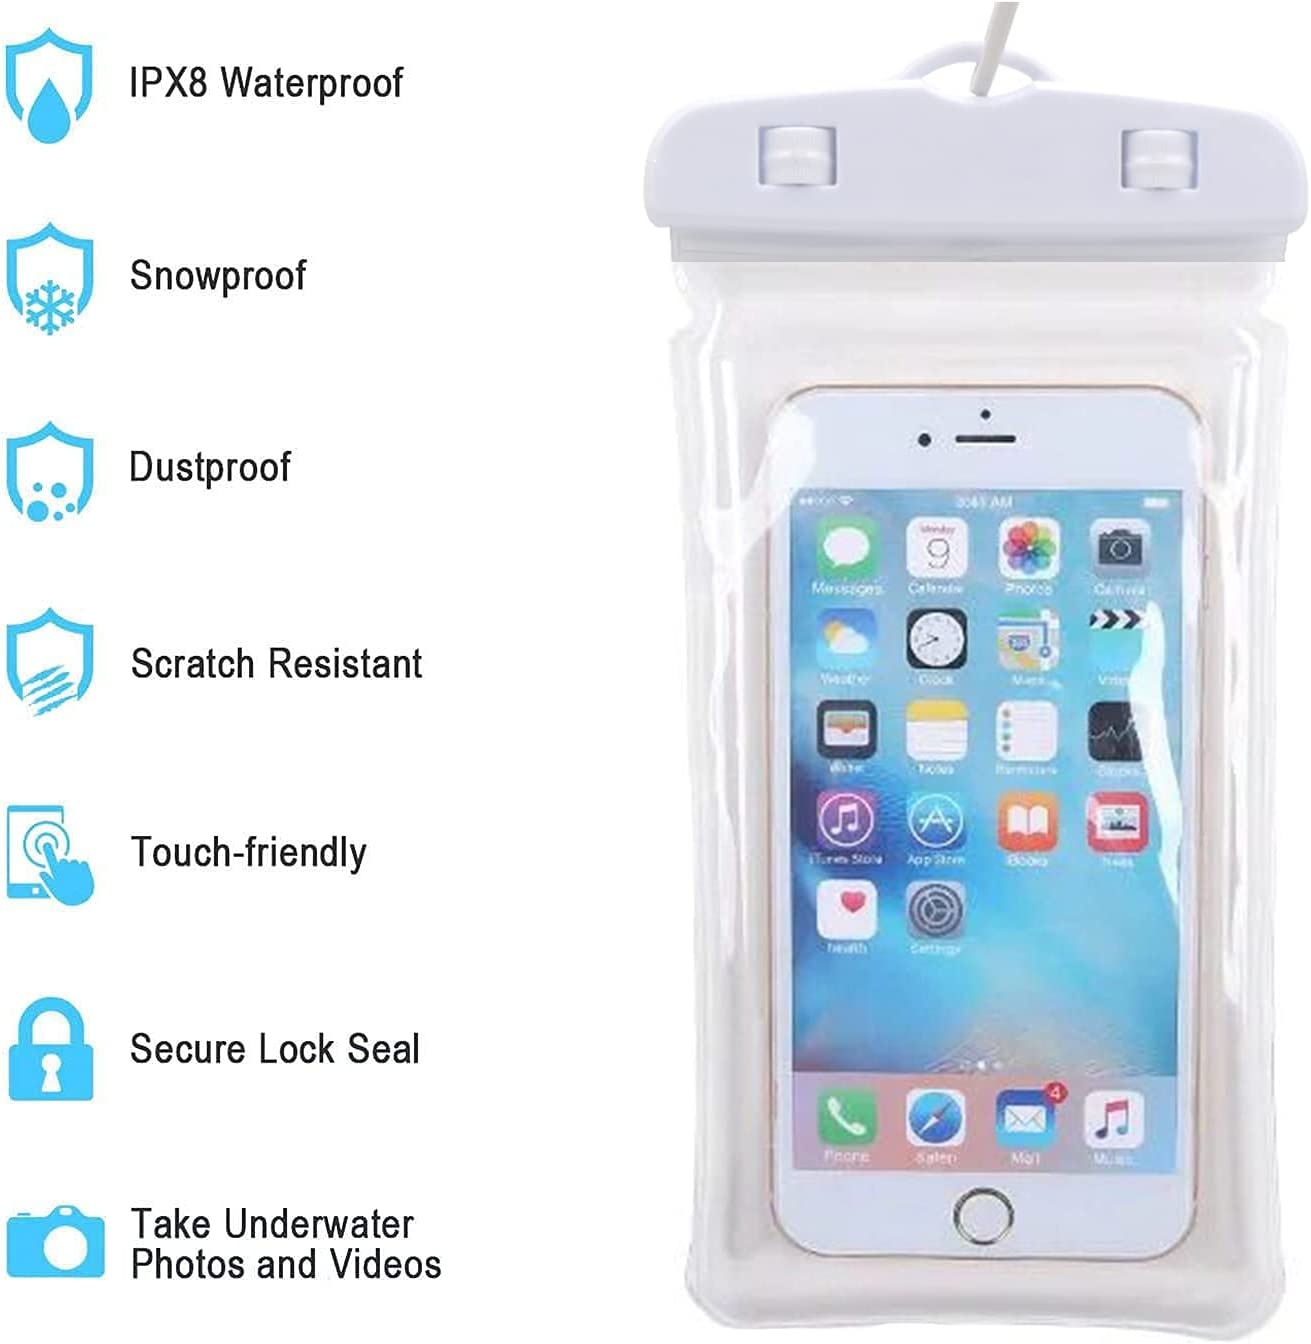 Universal Waterproof Case,Waterproof Phone Pouch Compatible for iPhone 12 Pro 11 Pro Max XS Max XR X 8 7 Samsung Galaxy s10/s9 Google Pixel 2 HTC Up to 7.0